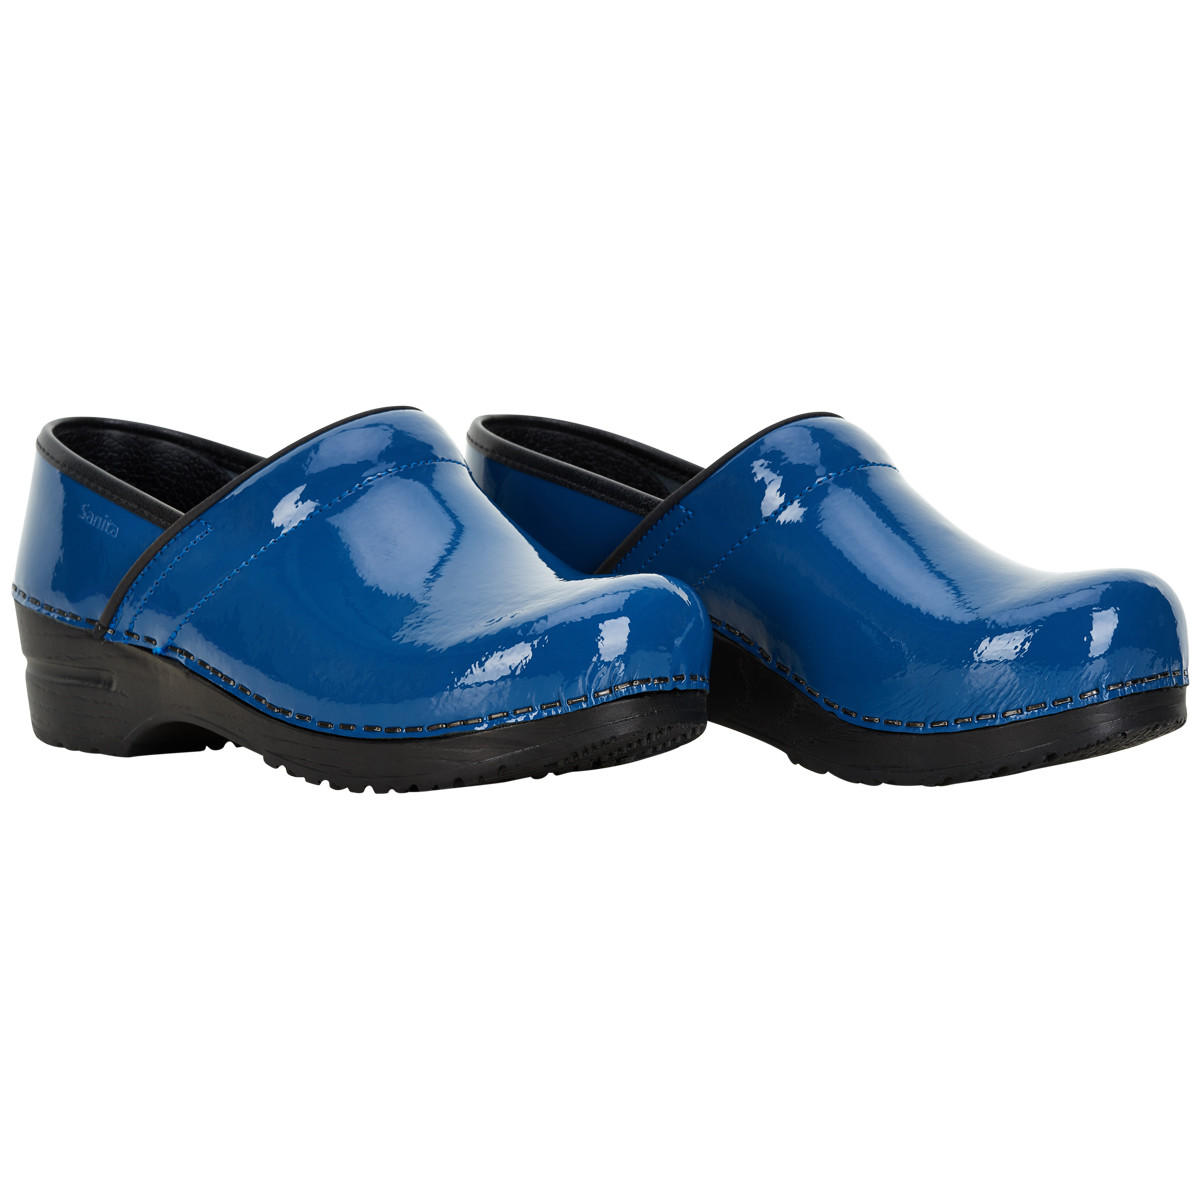 Sanita Original Patent Clogs 457406W 29